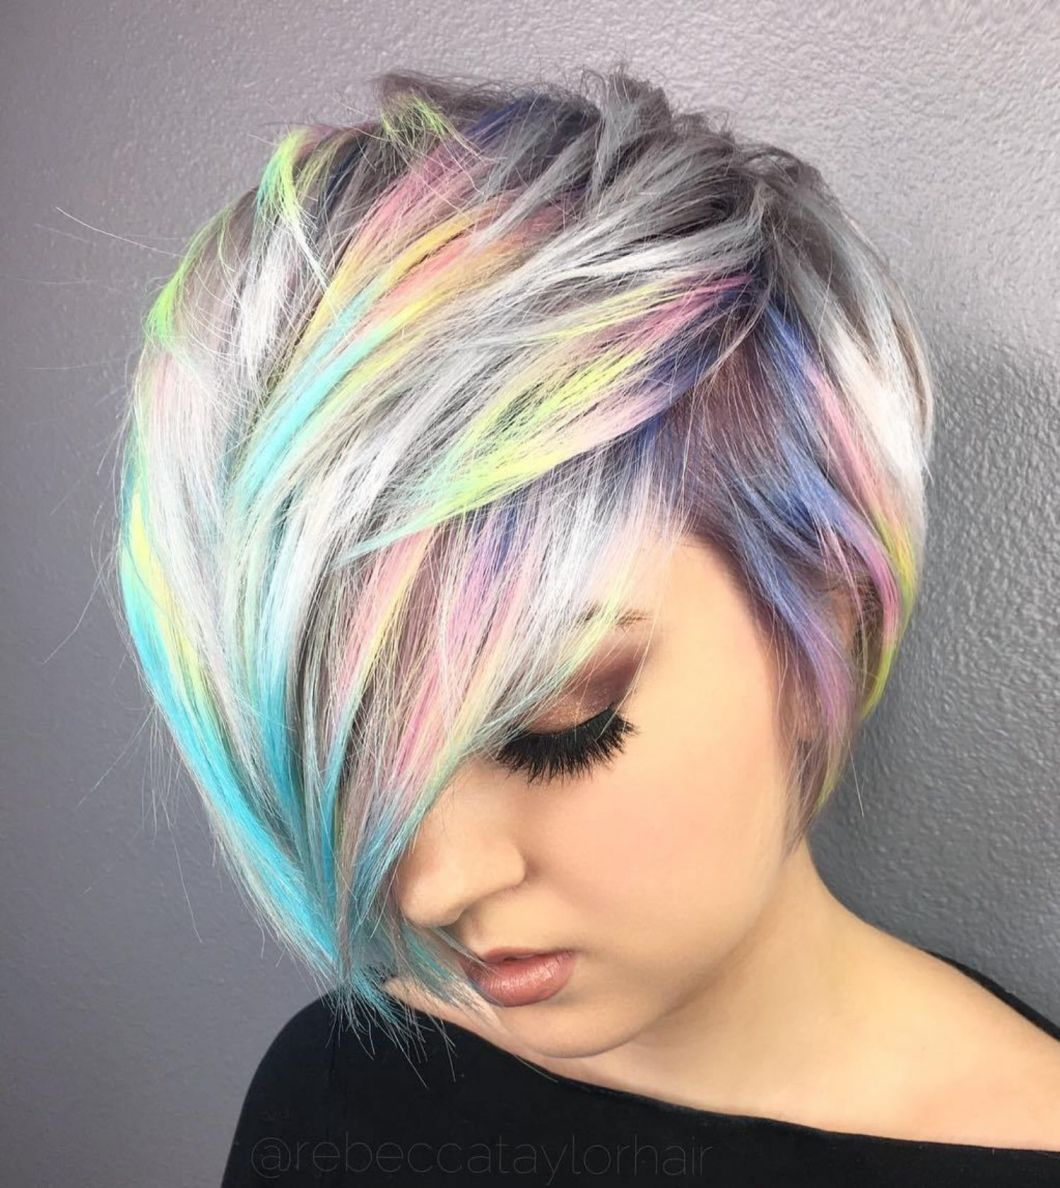 Pixie haircuts with bangs terrific tapers cool cuts